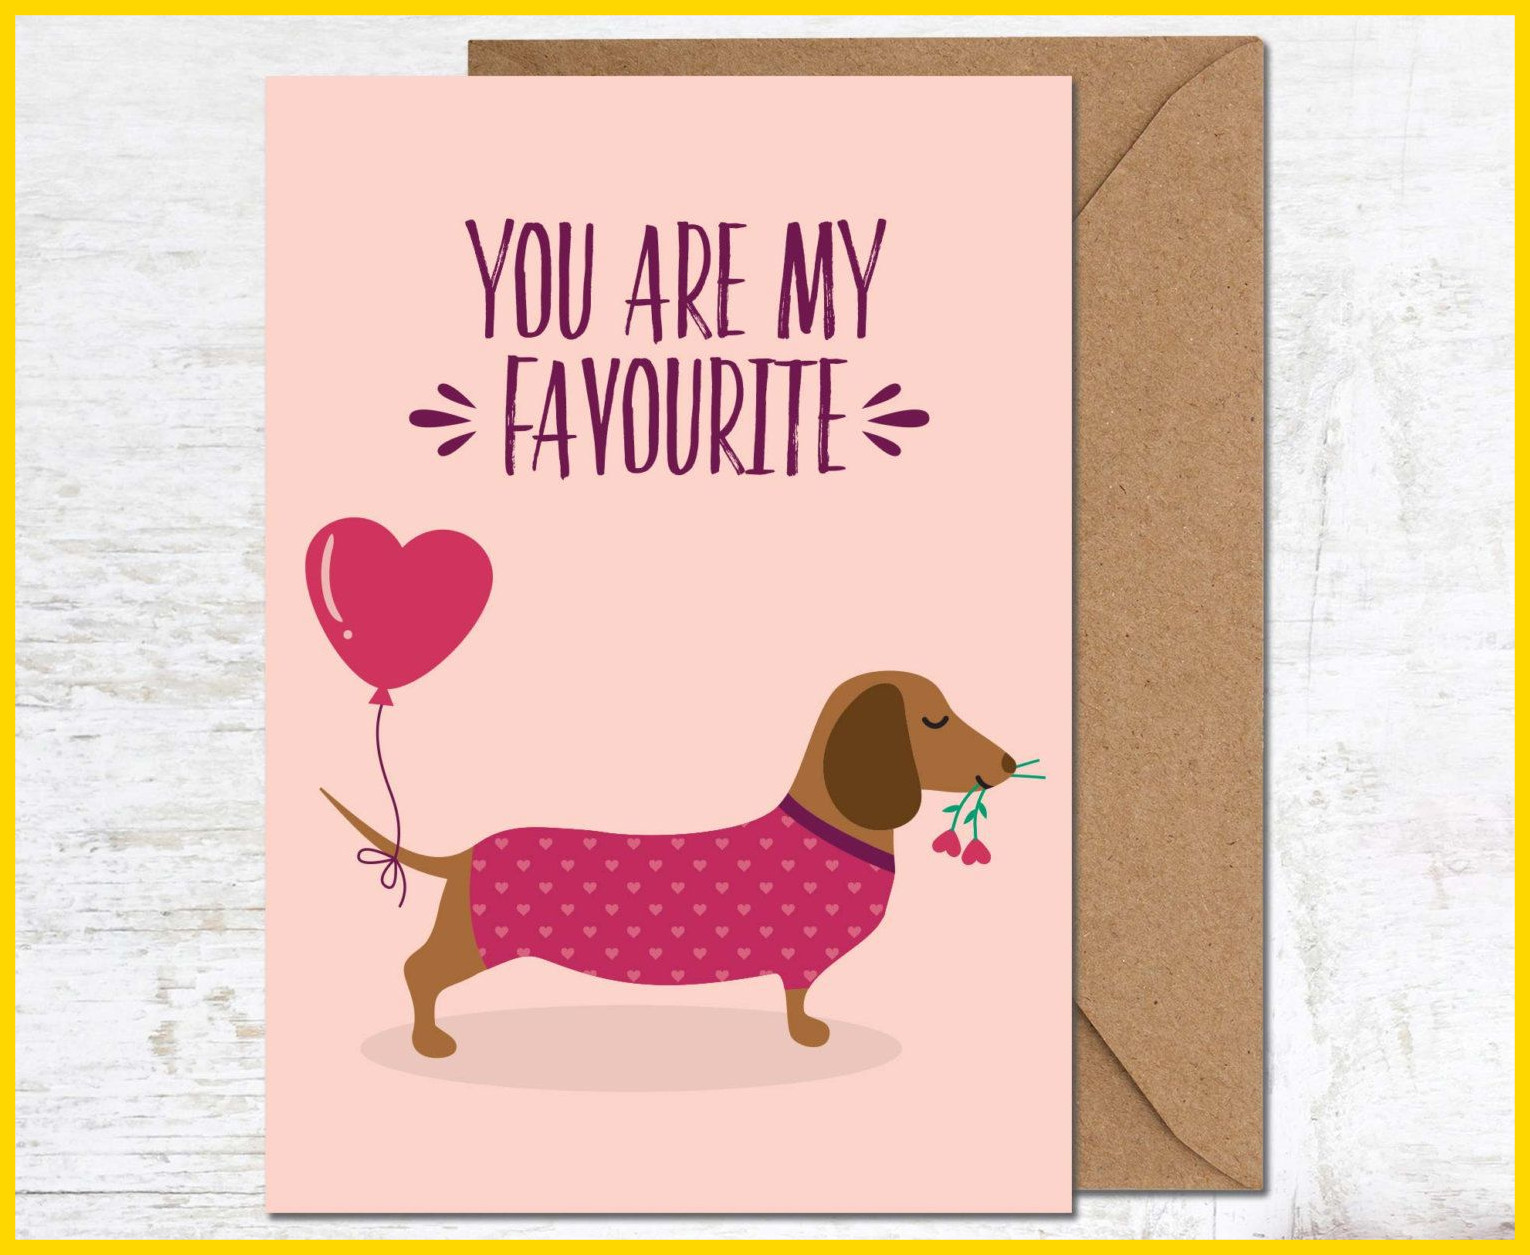 dog birthday card sayings ; incredible-dachshund-birthday-card-anniversary-sausage-dog-pic-for-cute-valentine-styles-and-sayings-trends